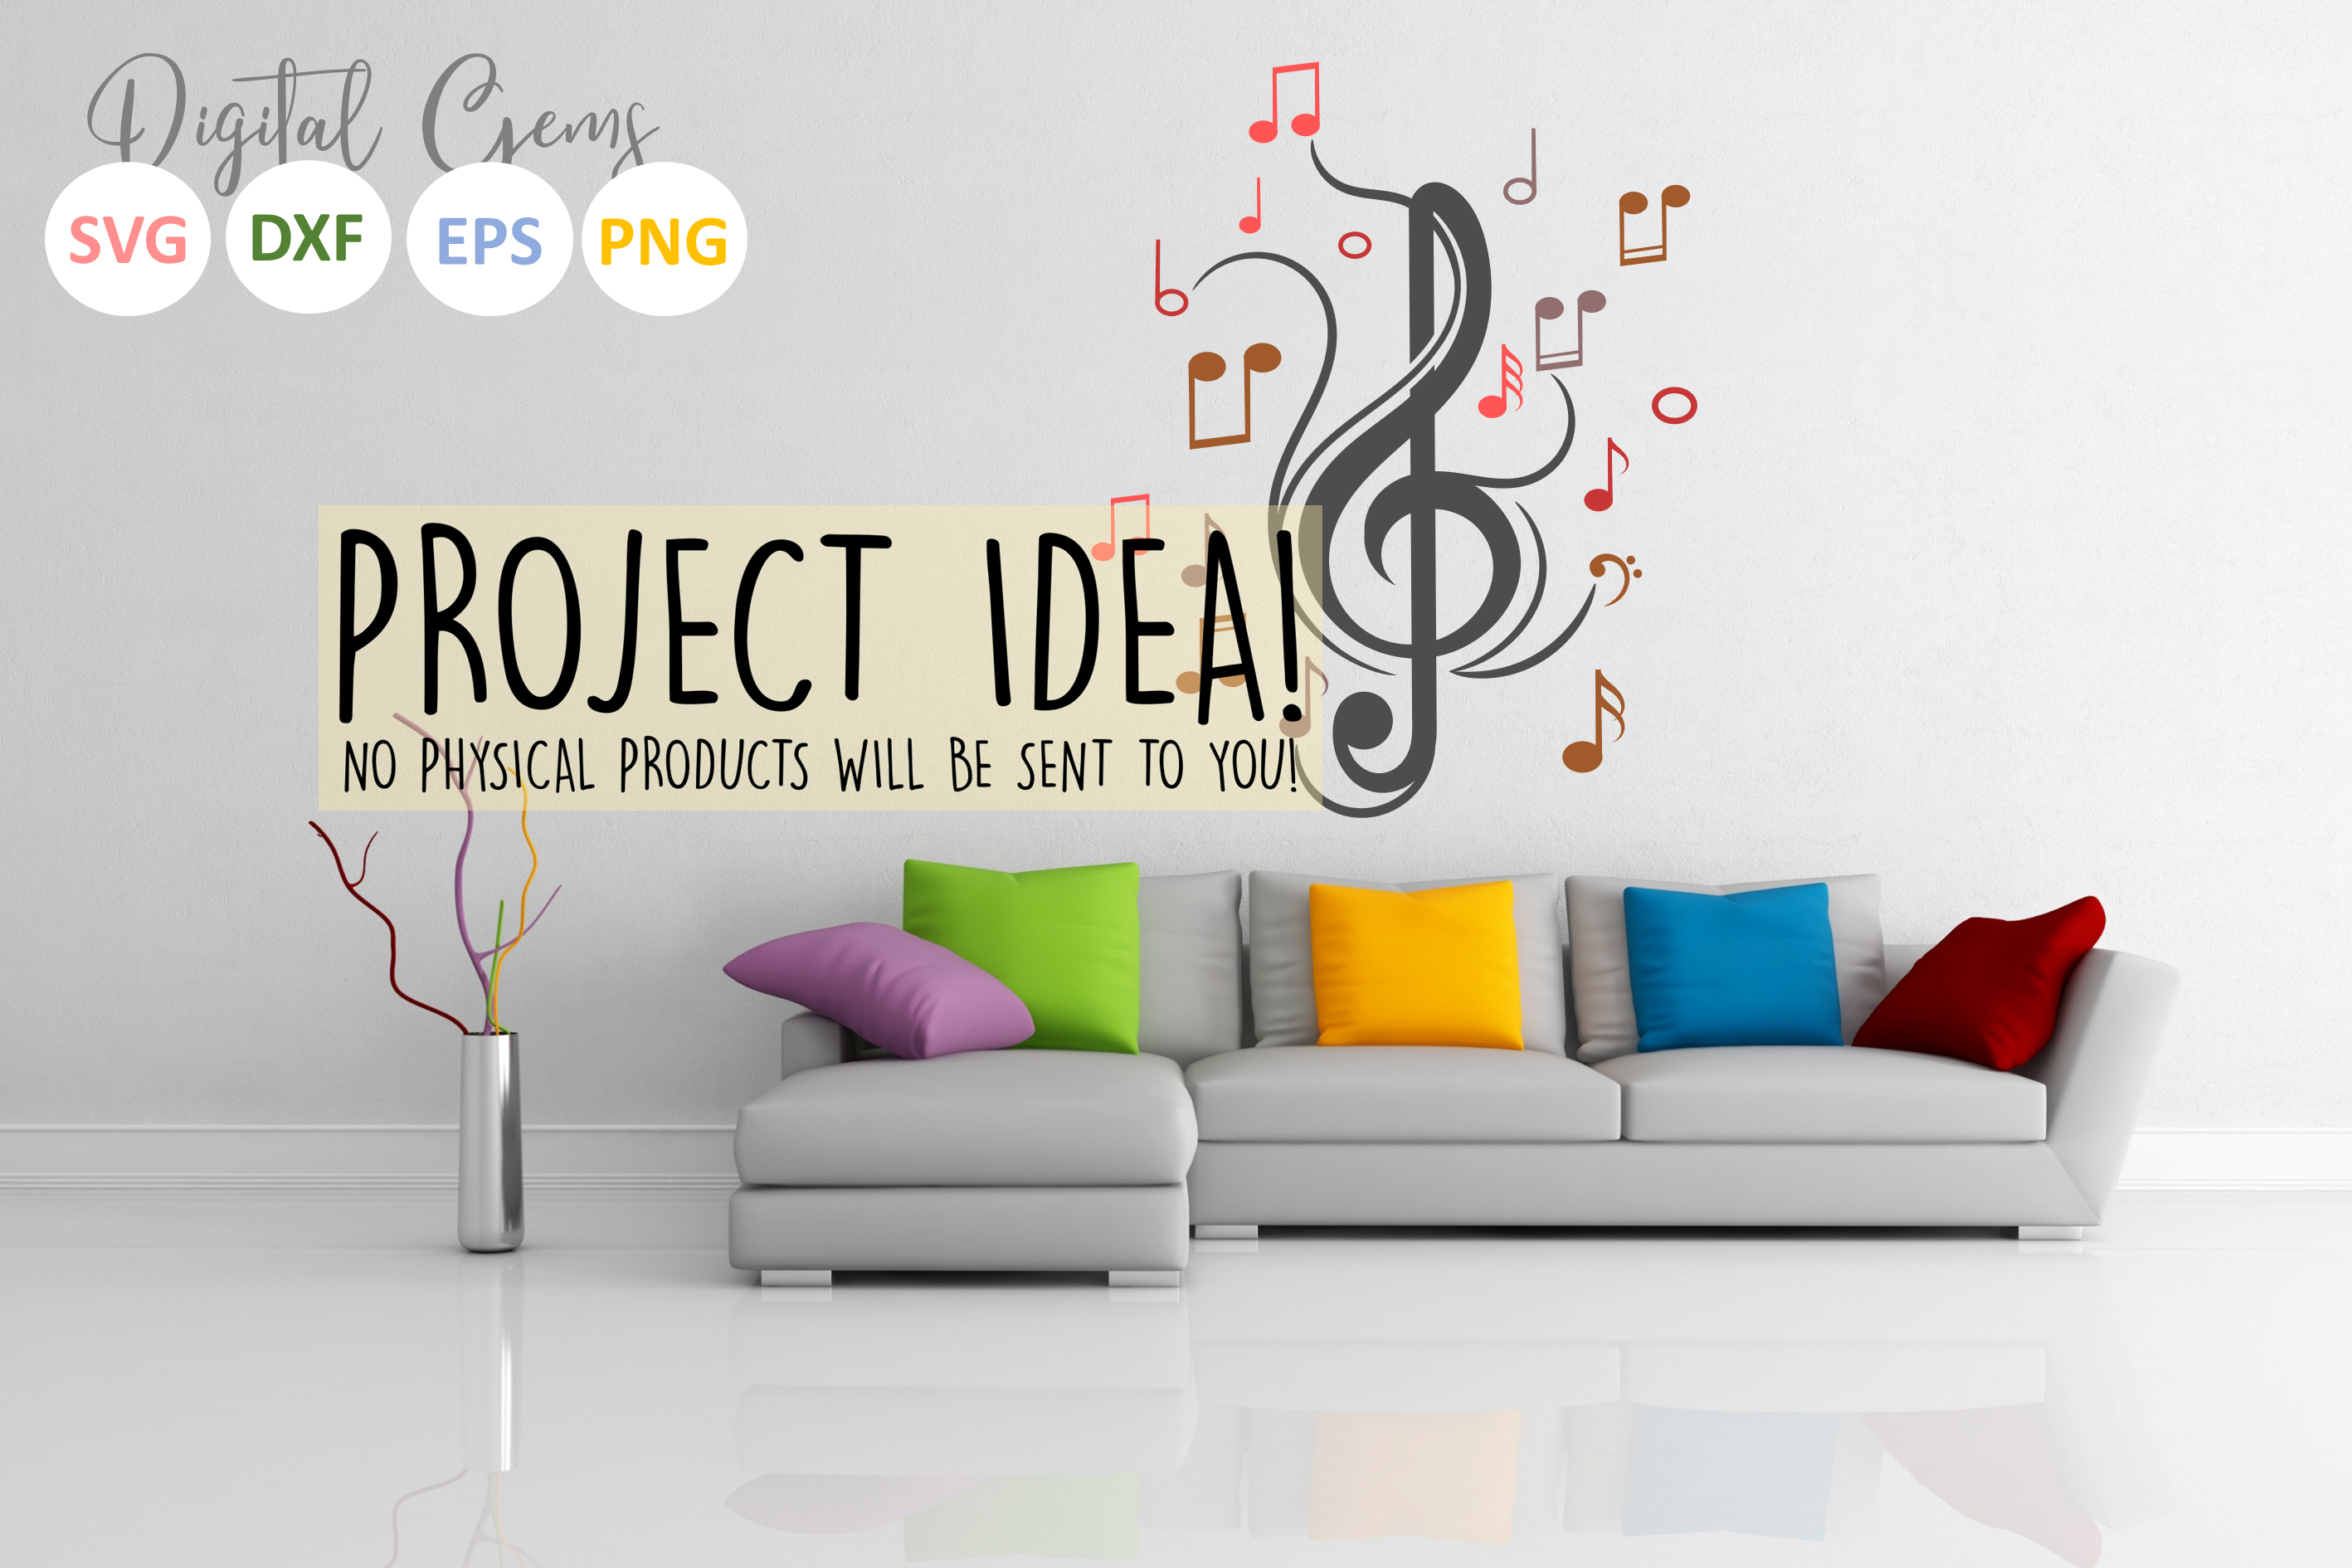 Treble clef with music notes SVG / DXF / EPS / PNG files example image 6